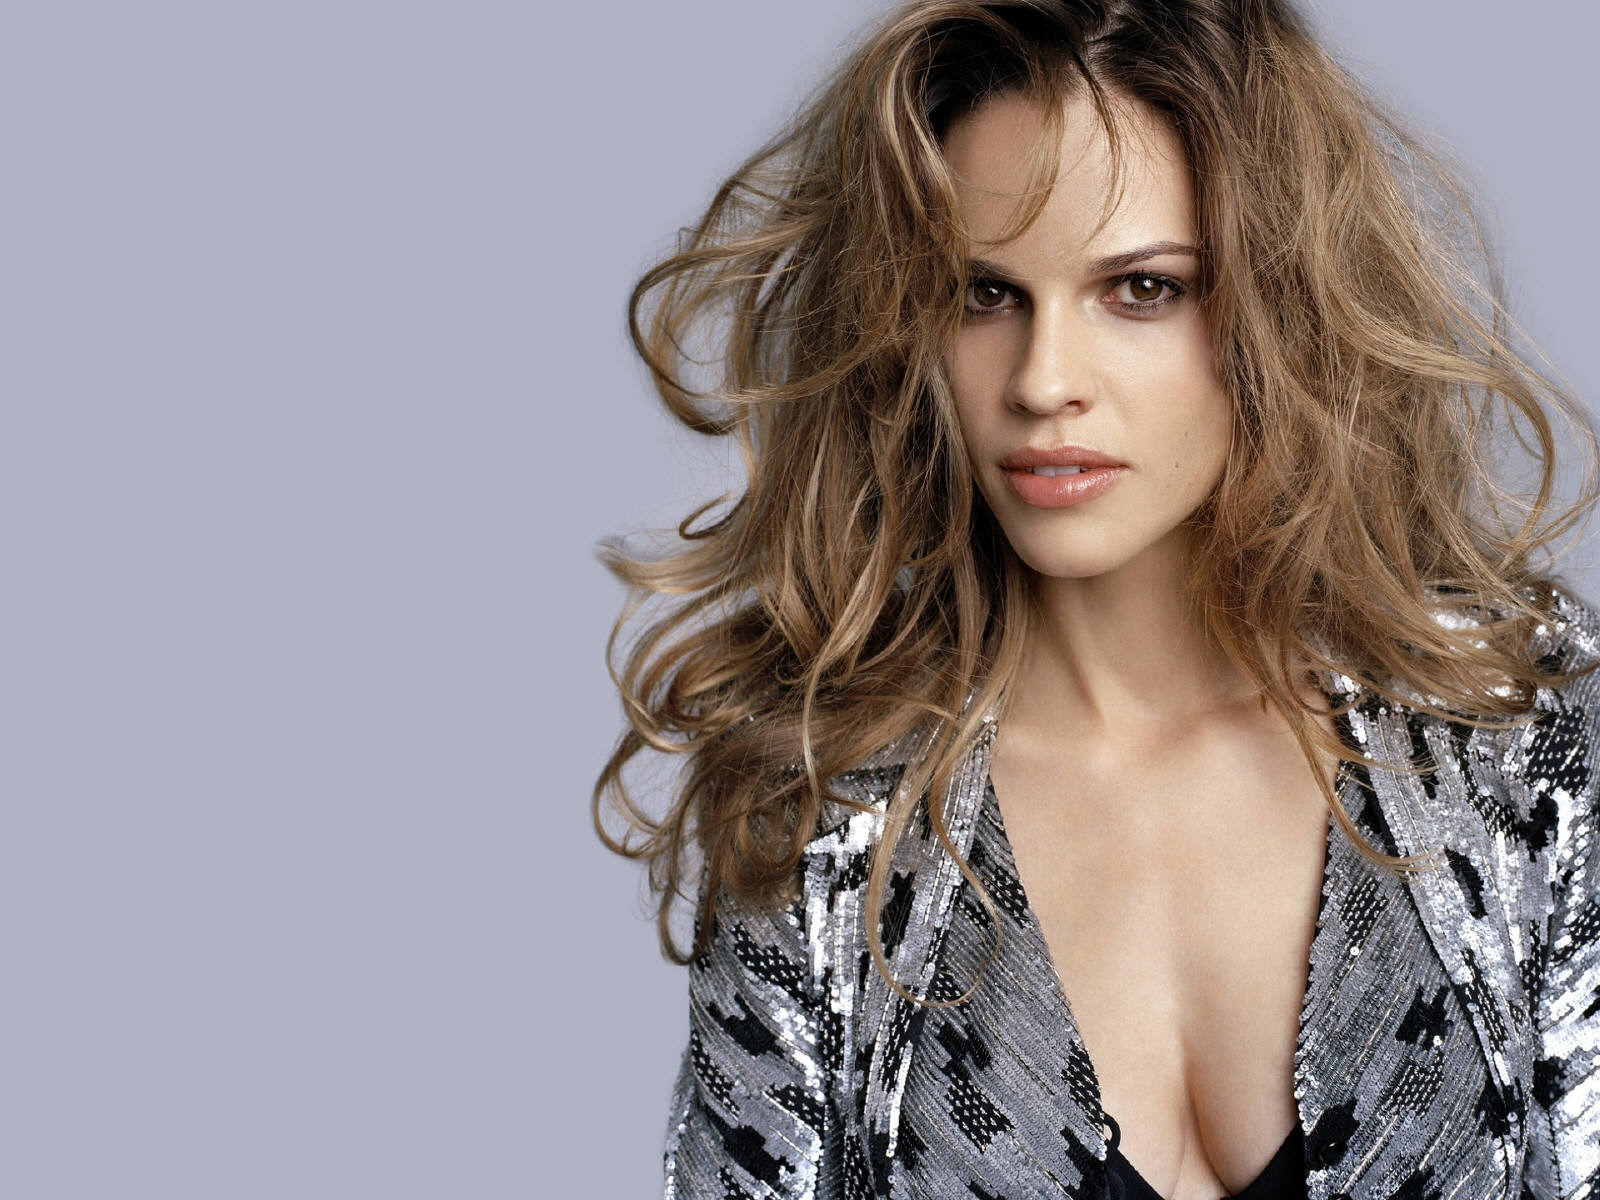 10 Famous Celebrities Who Once Lived In Their Cars - Hilary Swank - 40 million